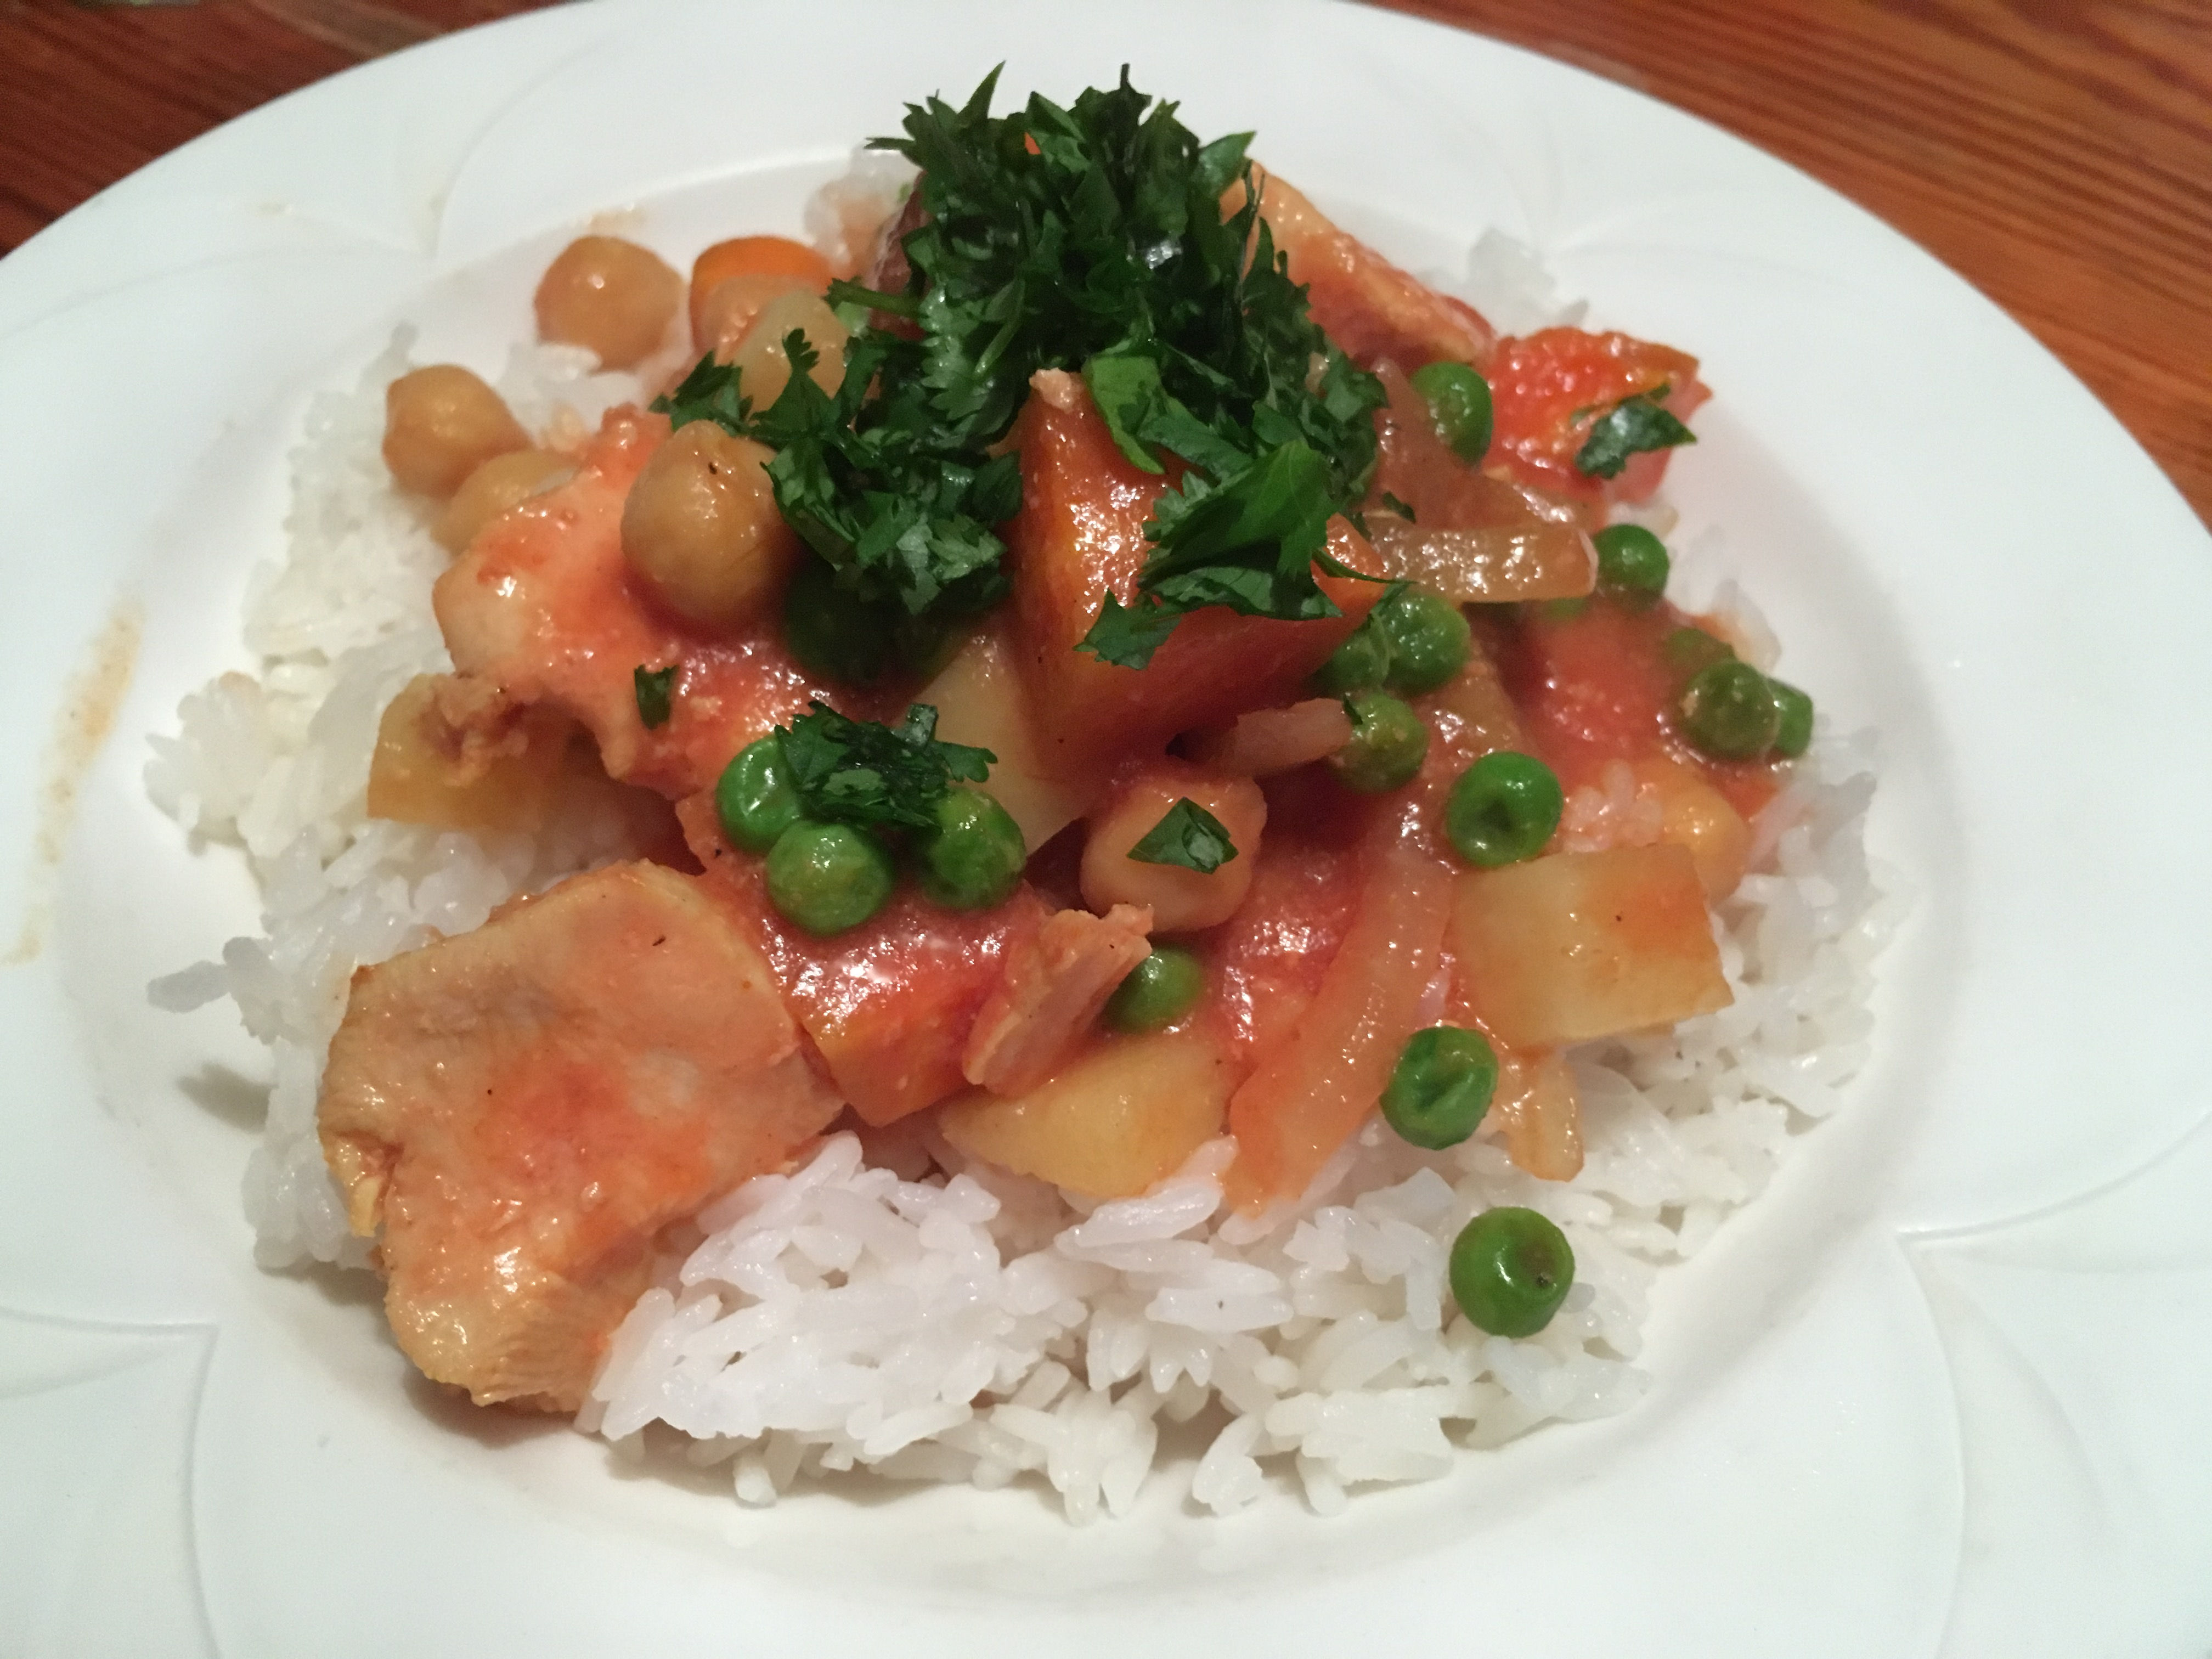 Boneless Chicken Breast with Tomatoes, Coconut Milk, and Chickpeas in the Slow Cooker